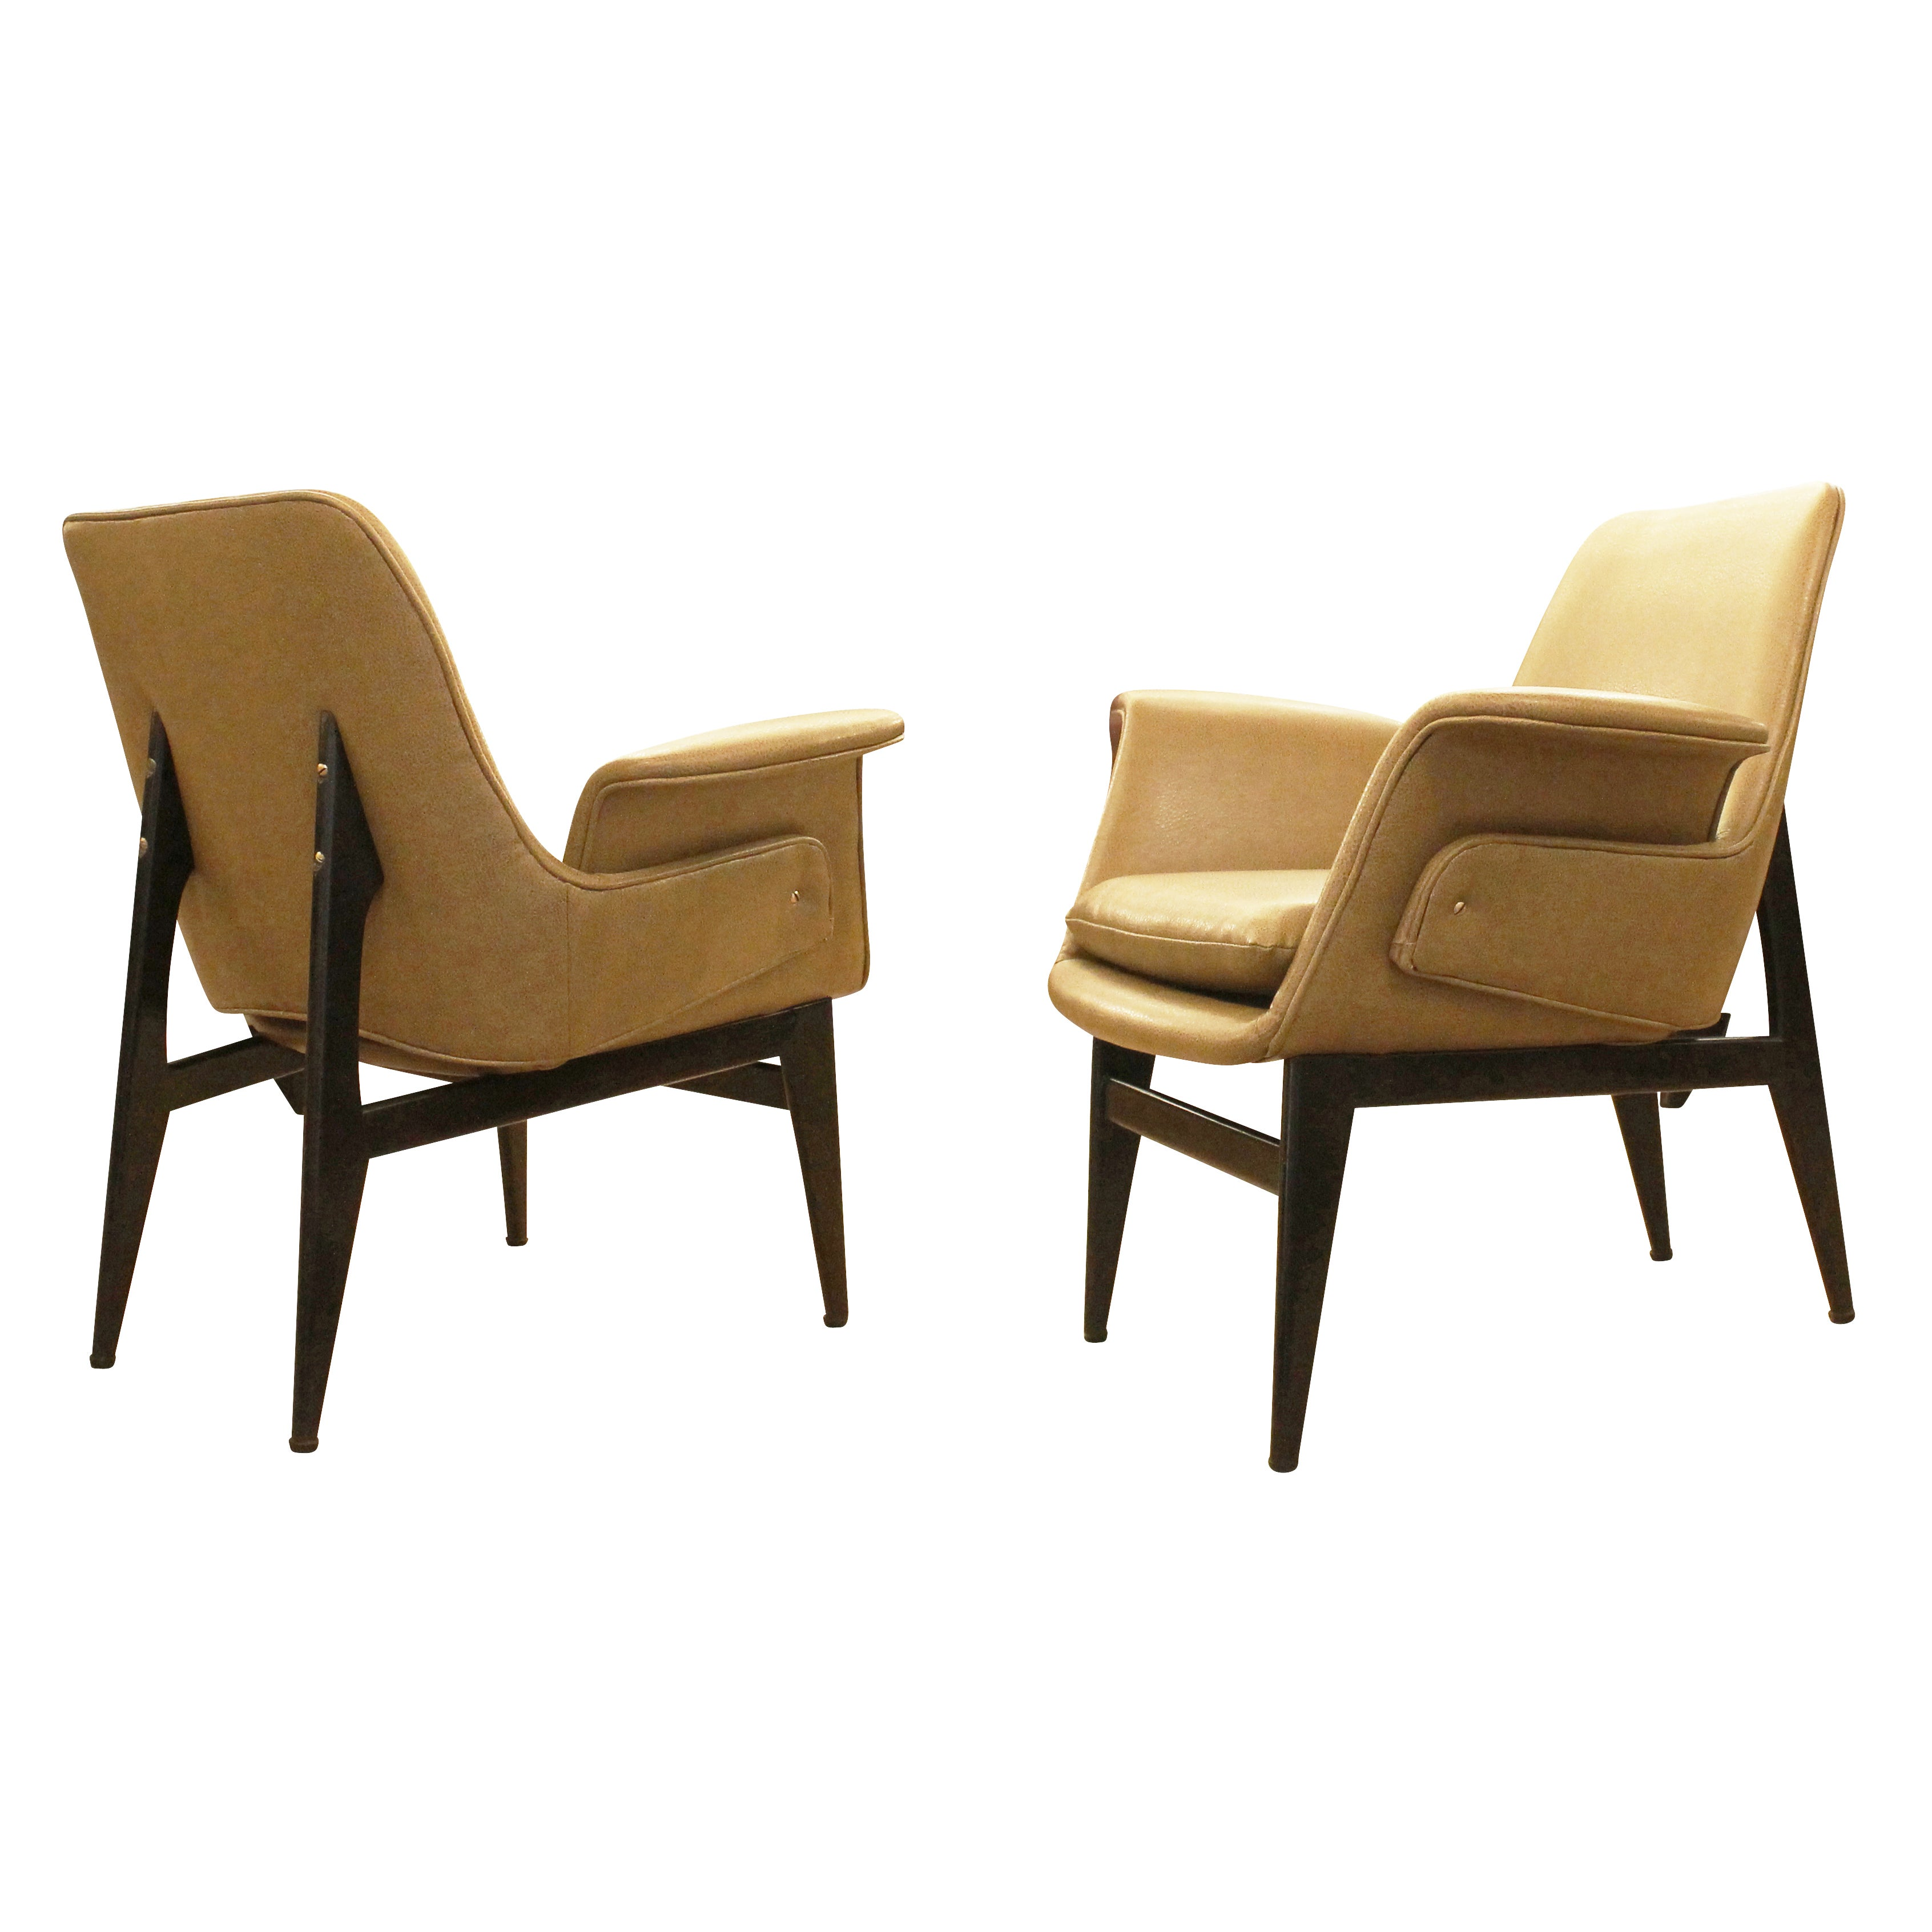 Diminutive 1960s Italian Lounge Chairs